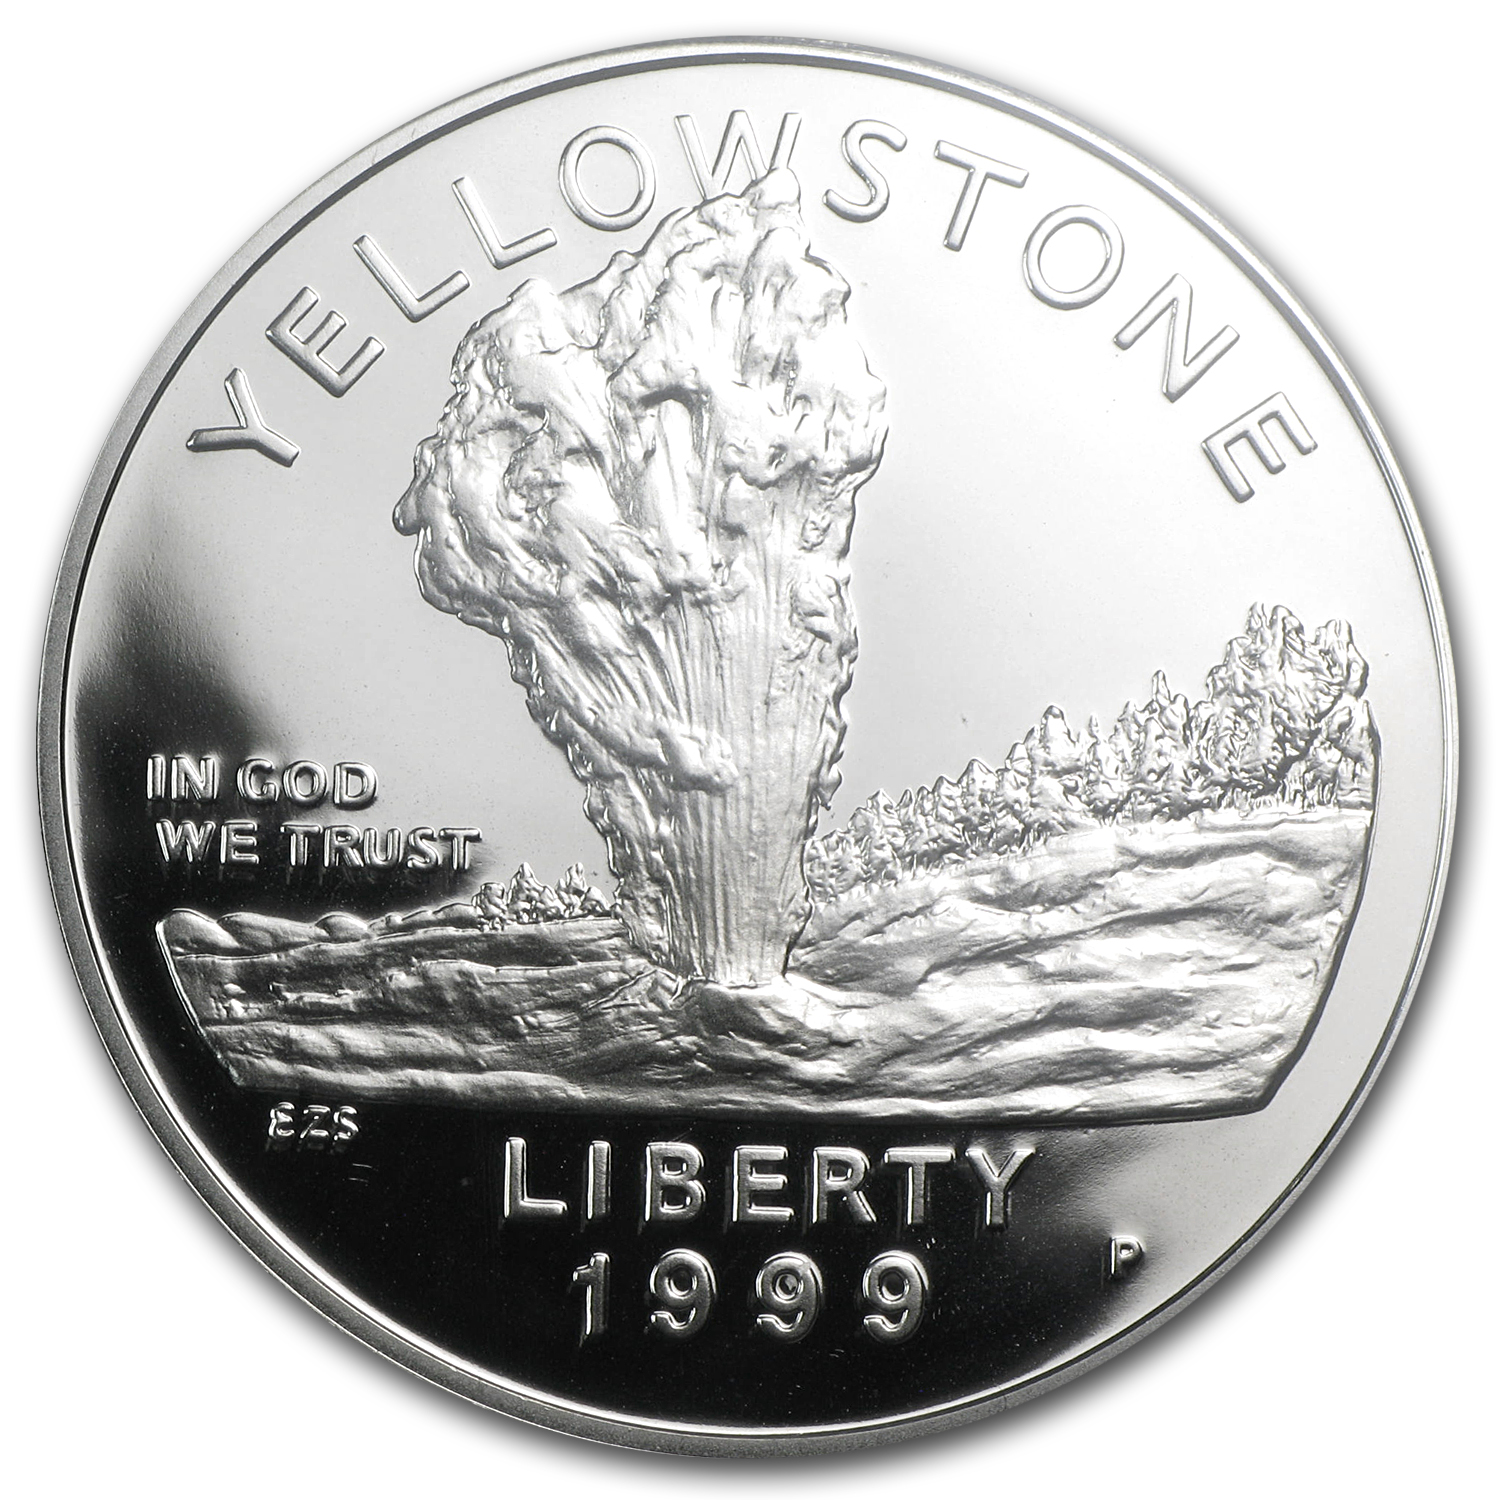 1999-P Yellowstone Park $1 Silver Commemorative PR-70 PCGS